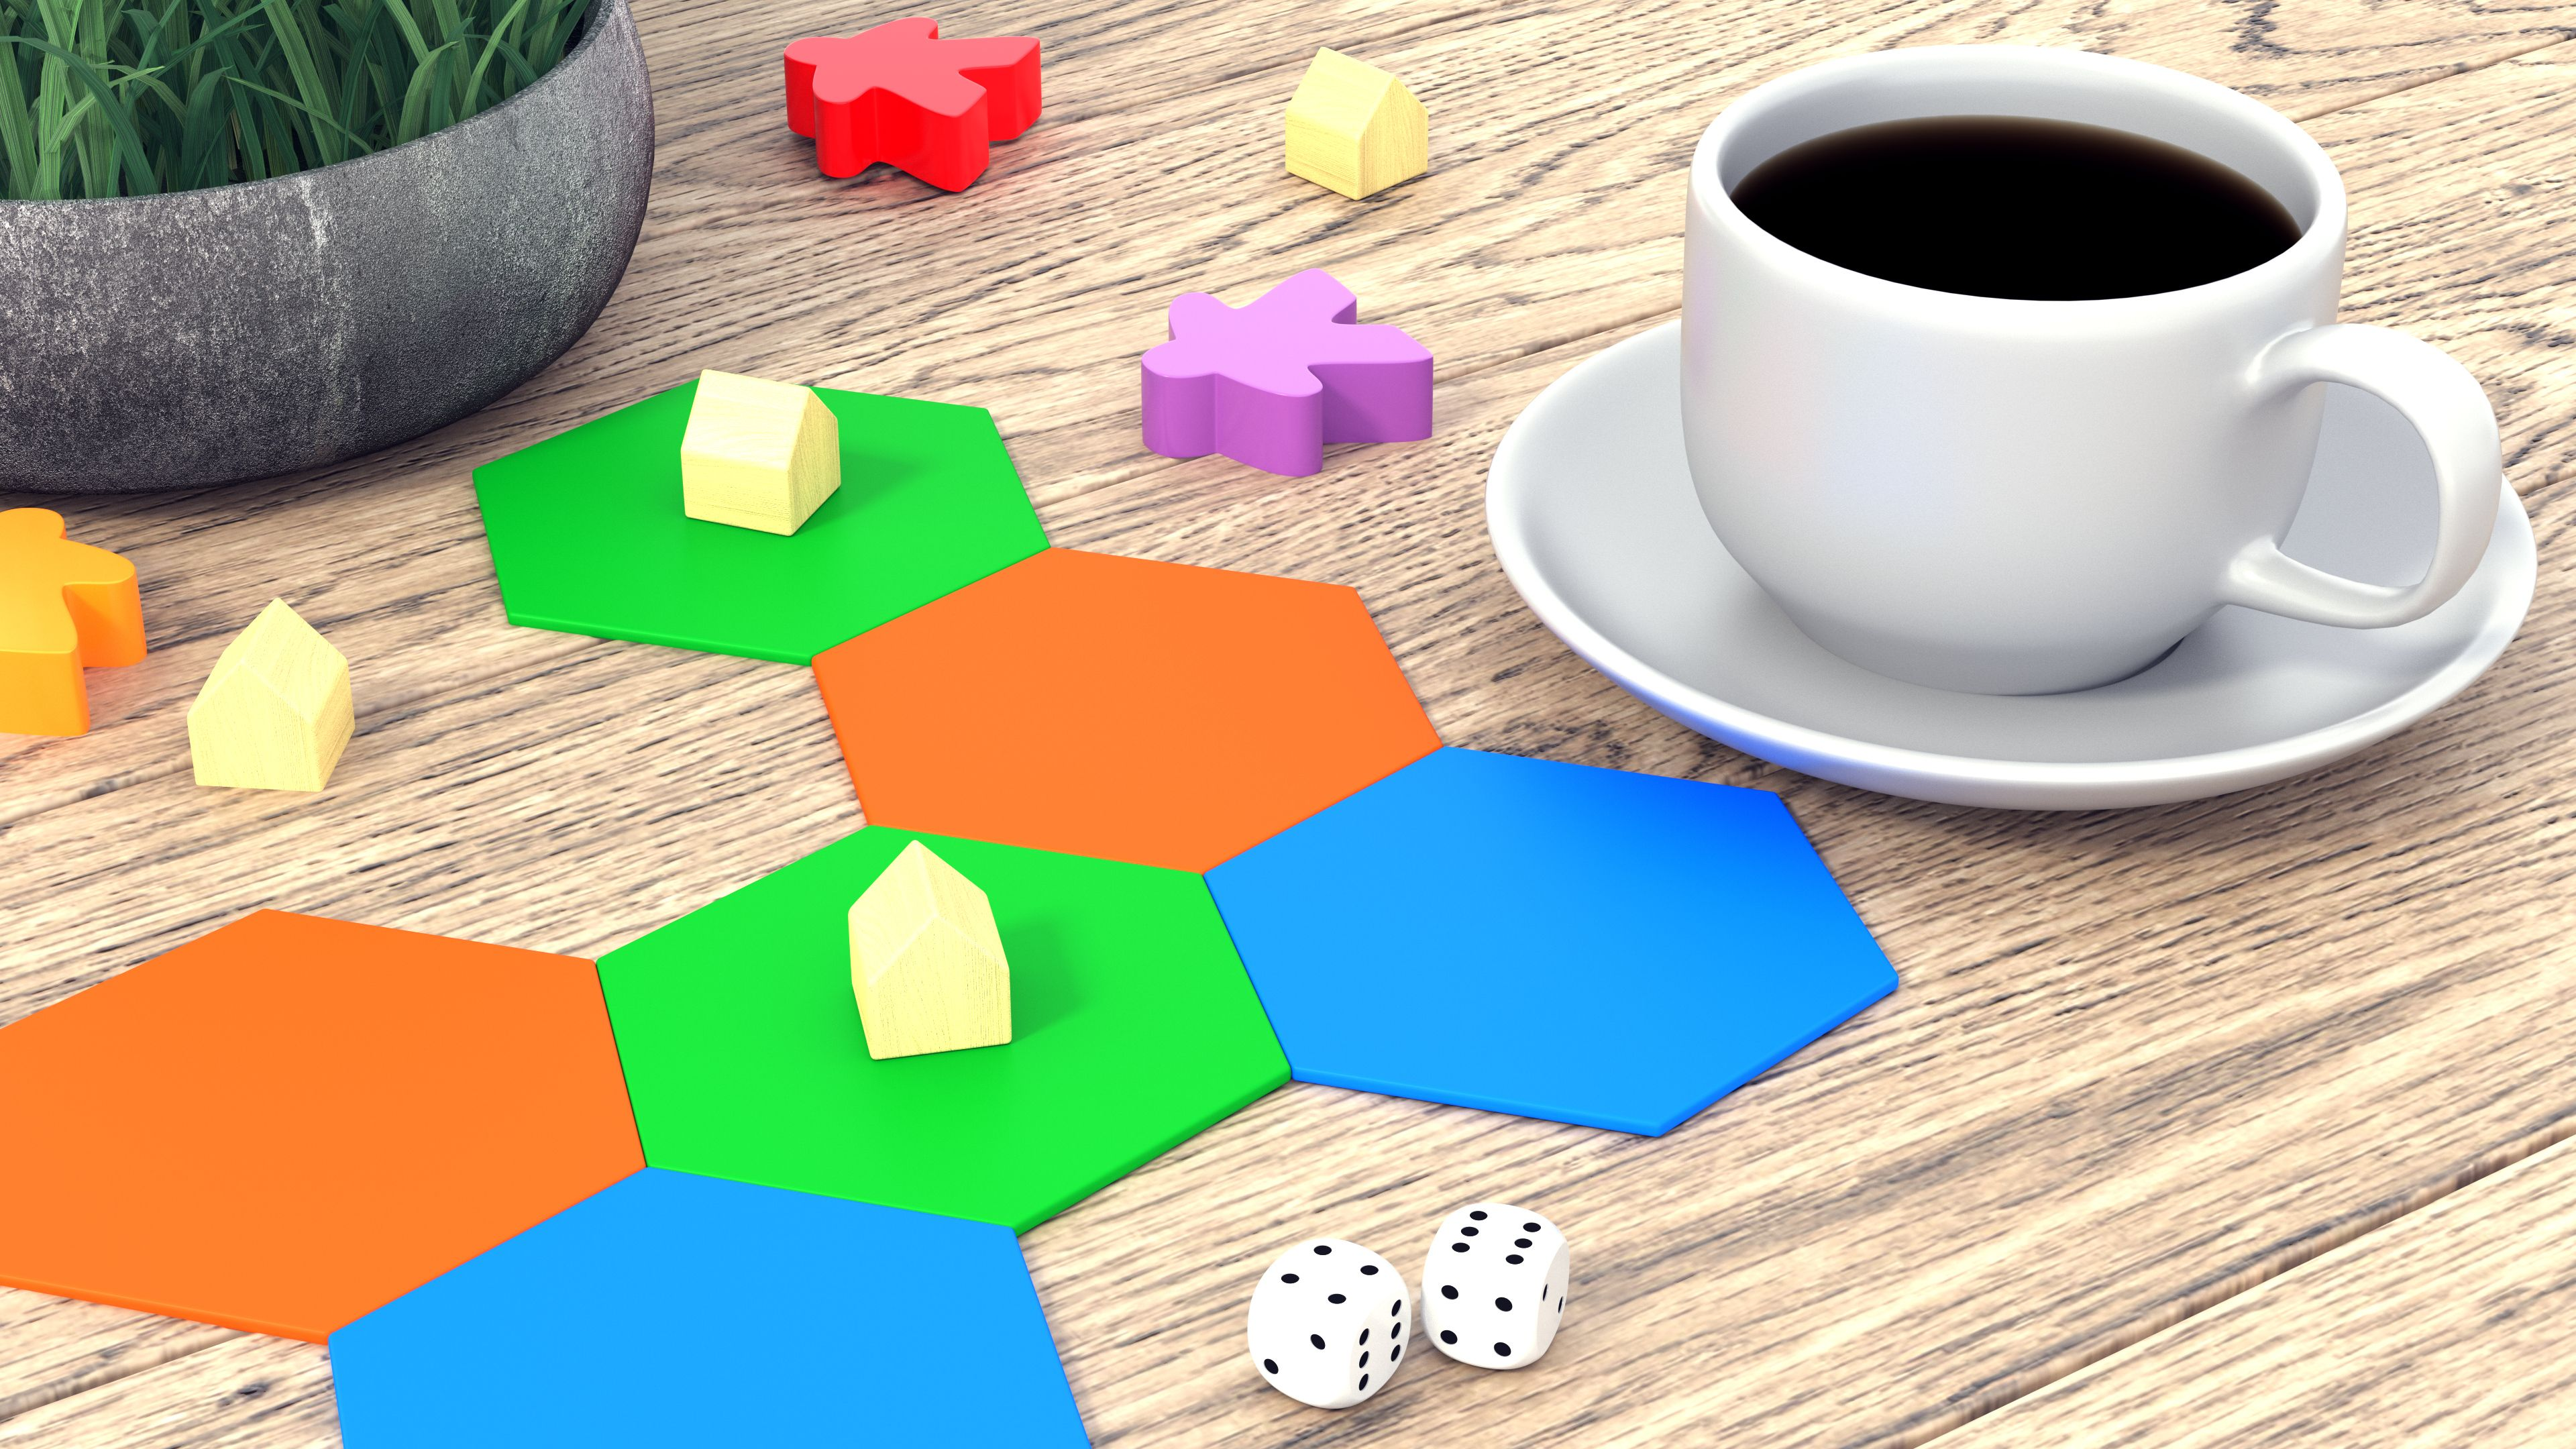 Board game figures and dice. A cup of coffee on a wooden